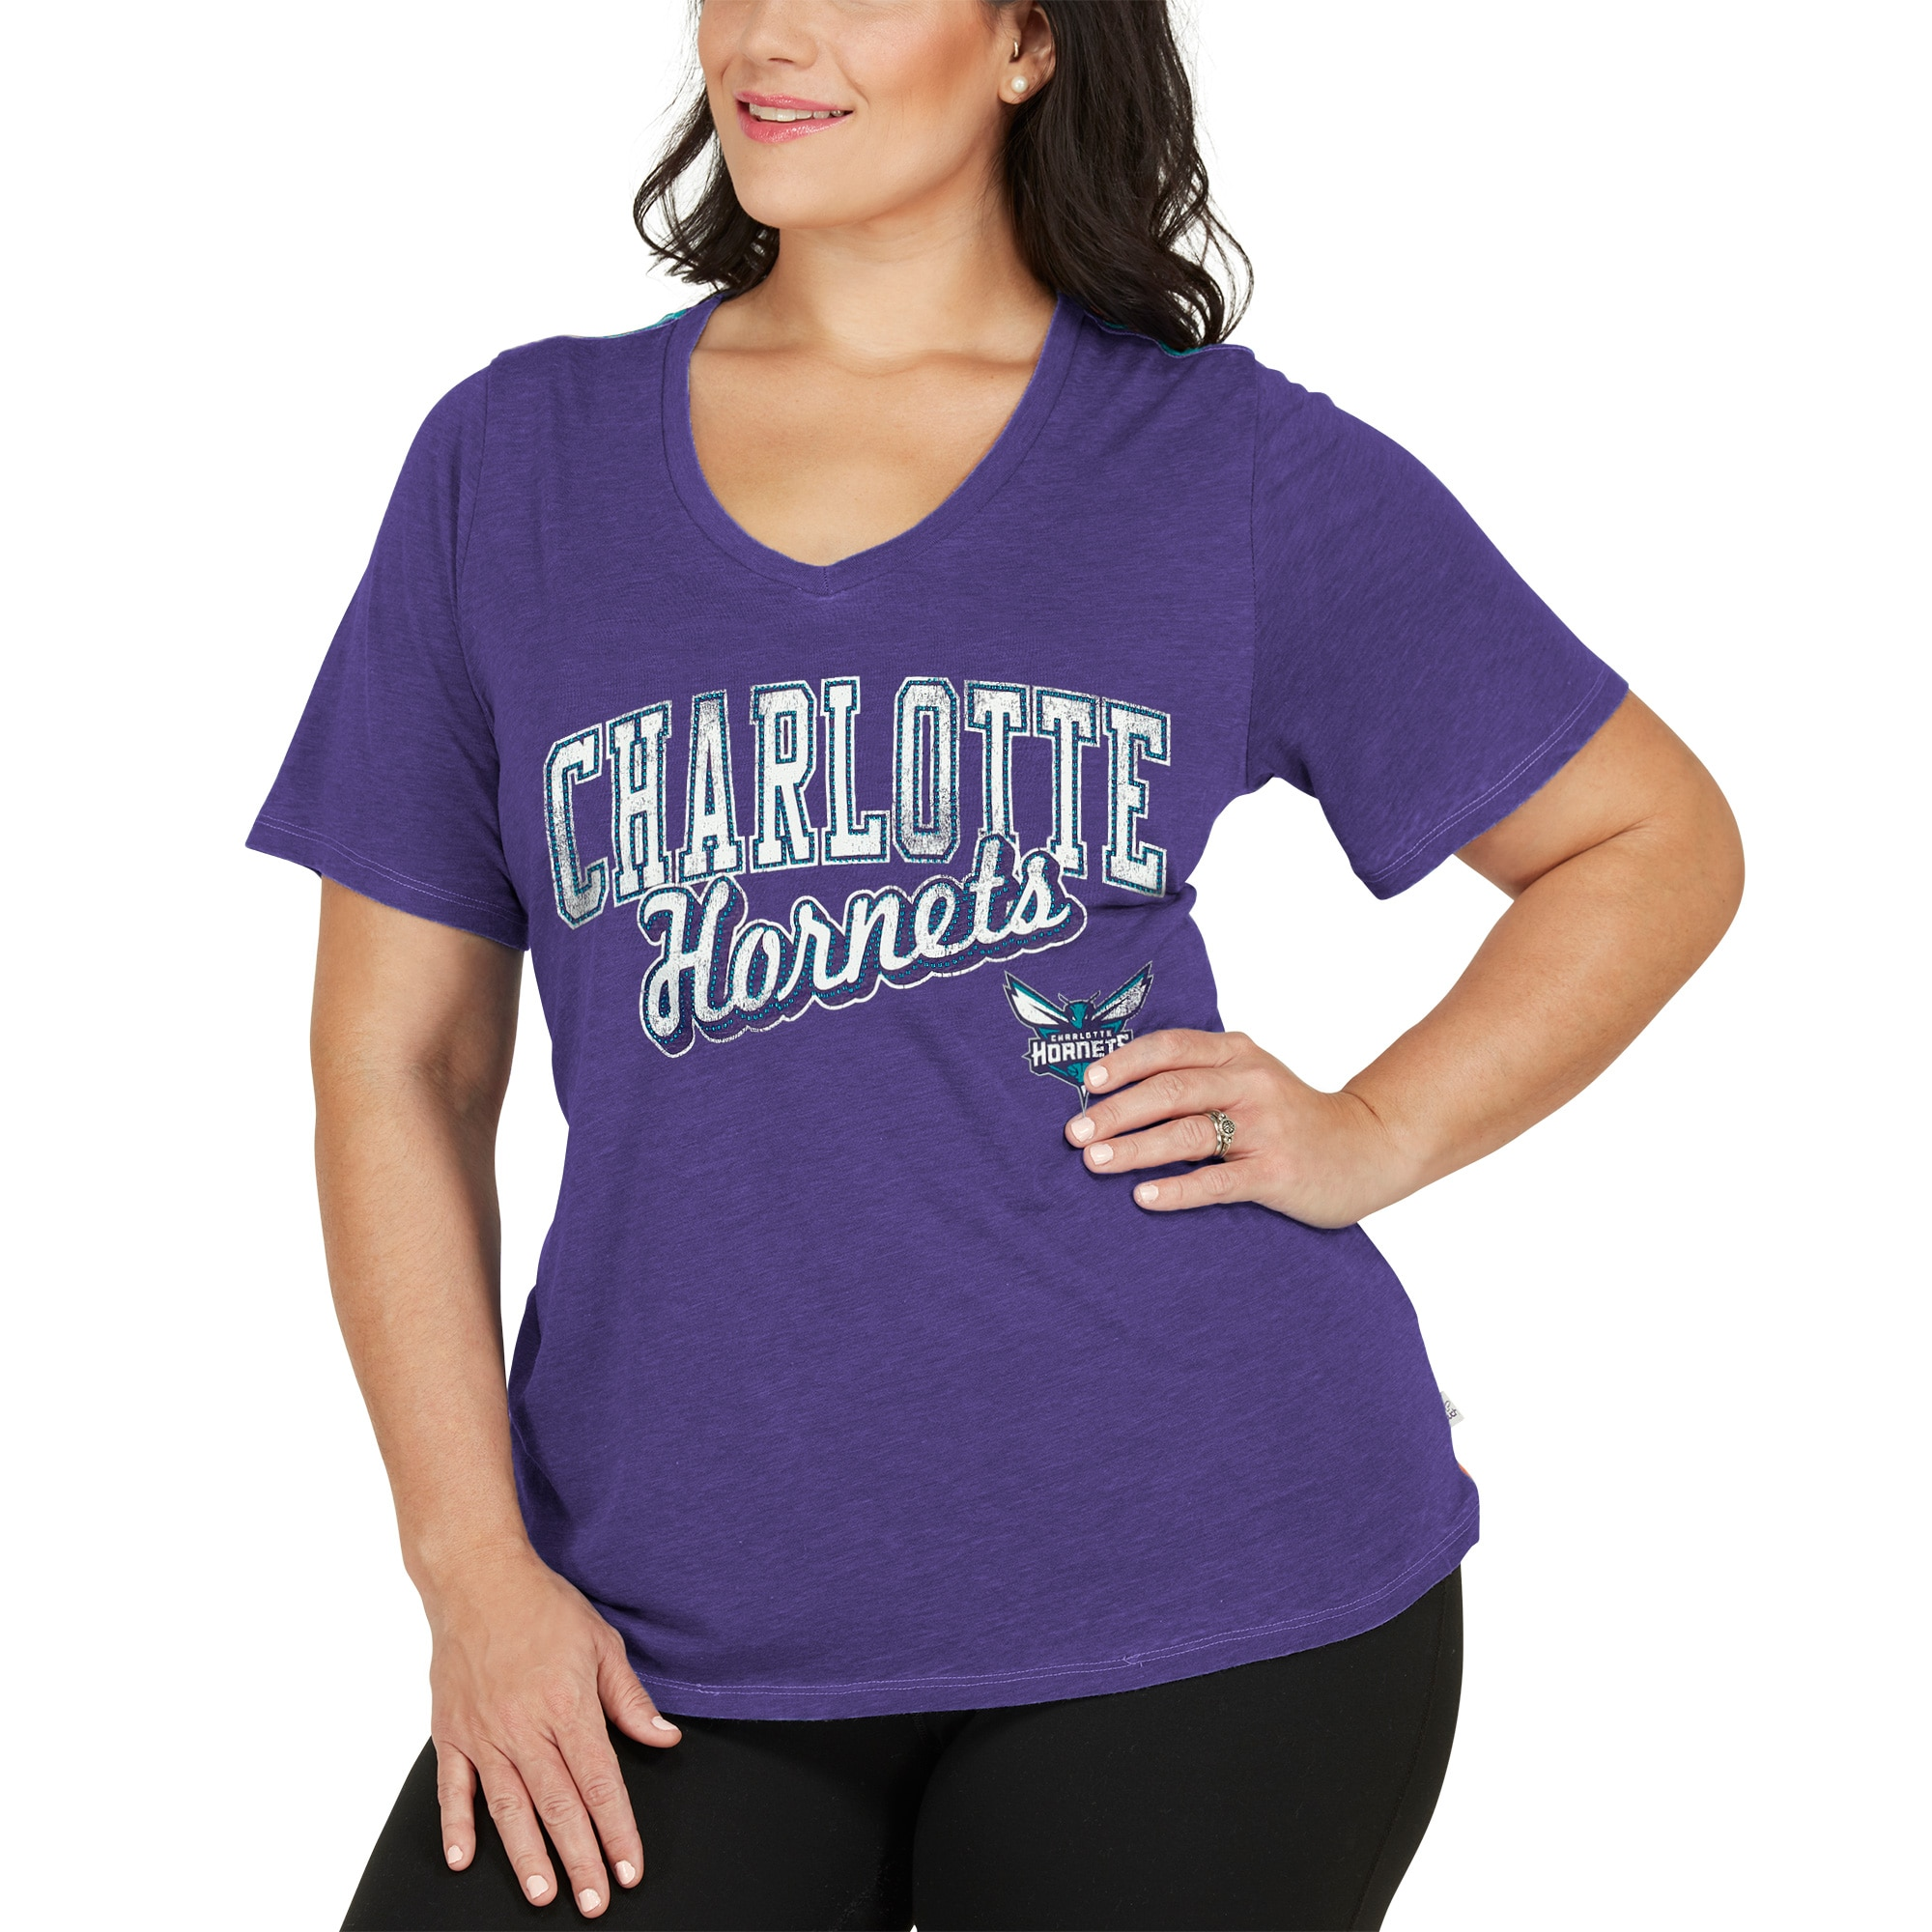 Charlotte Hornets Touch by Alyssa Milano Women's Plus Size Star Player T-Shirt - Purple